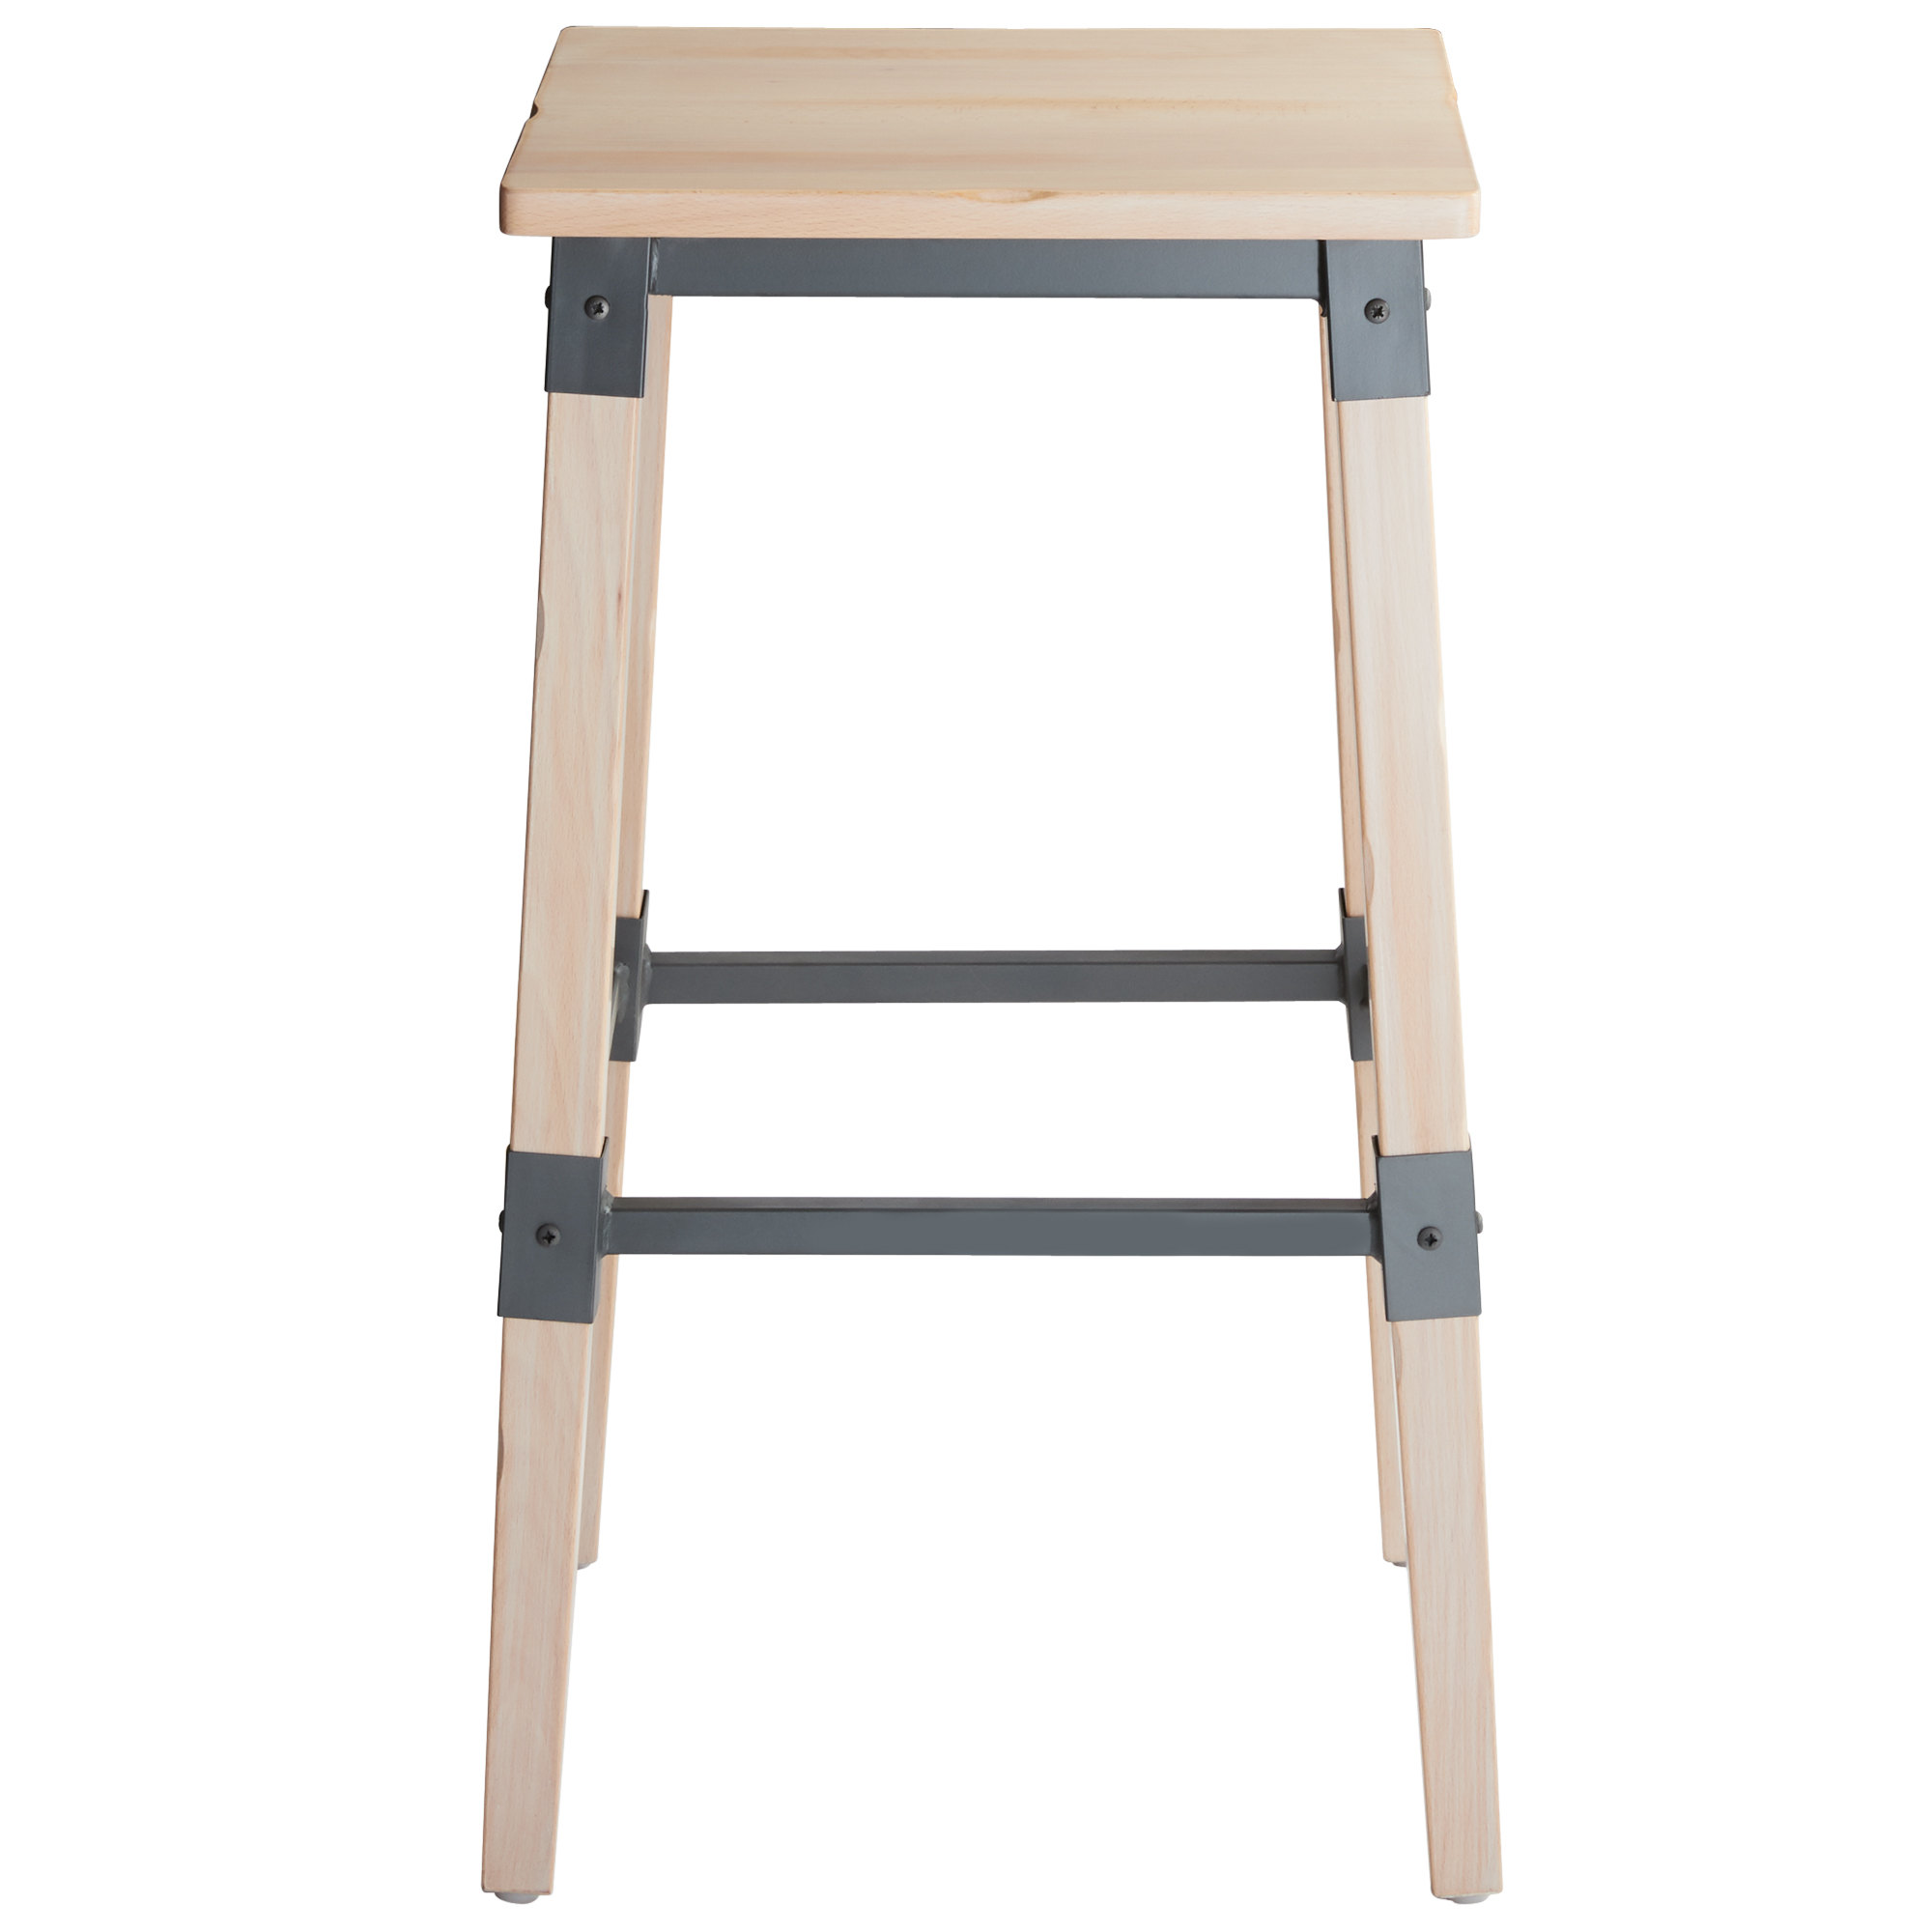 #57 - Rustic Industrial Style Backless Bar Stool with White Wash Finish